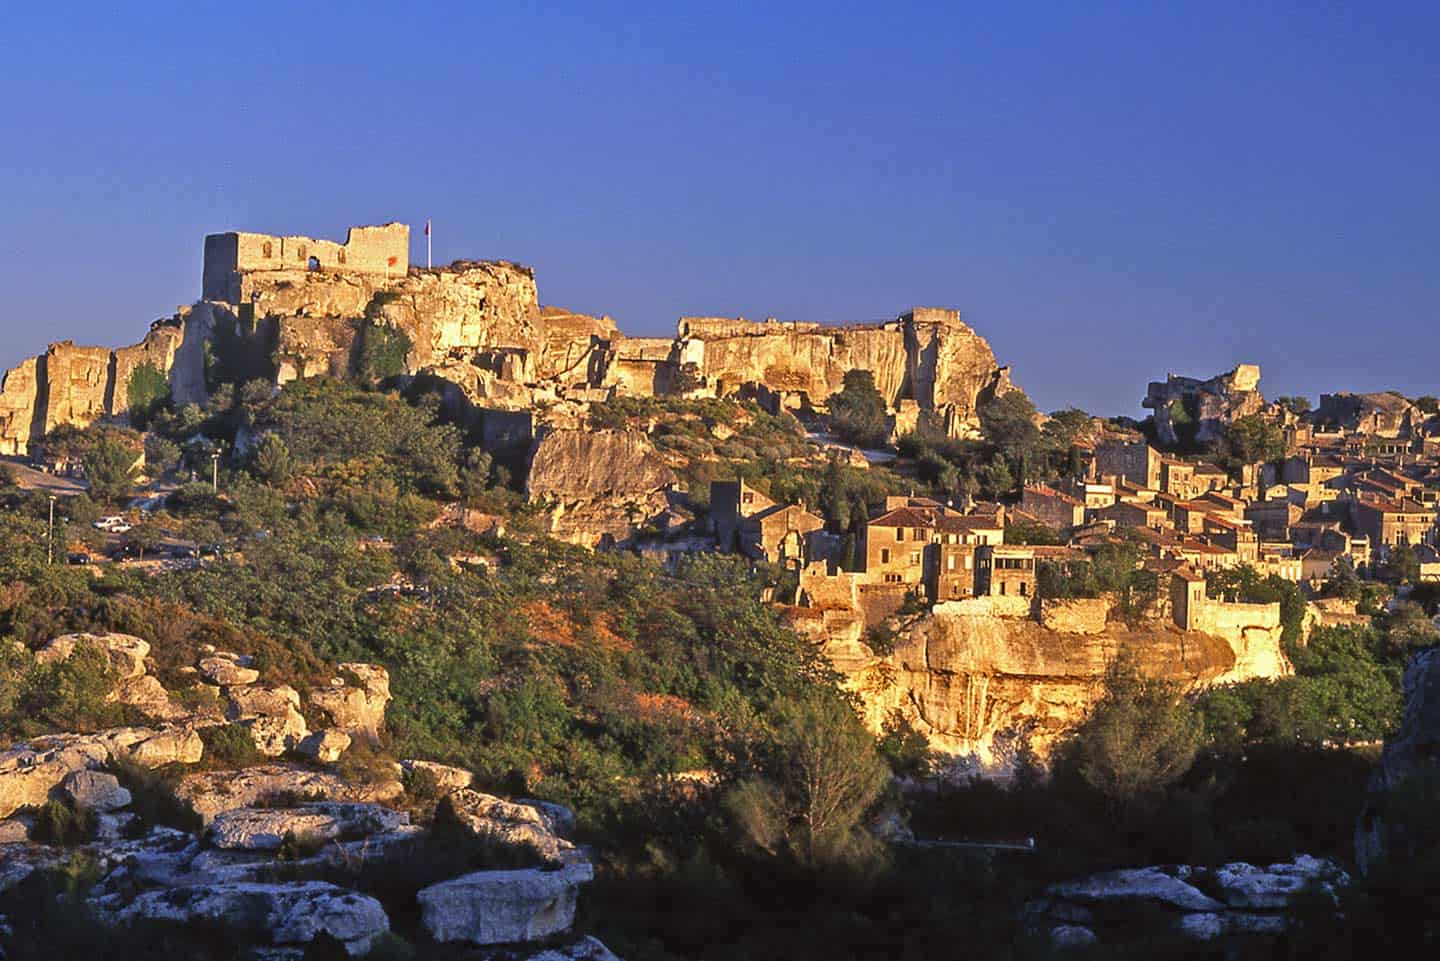 Image of the village of Les Baux de Provence